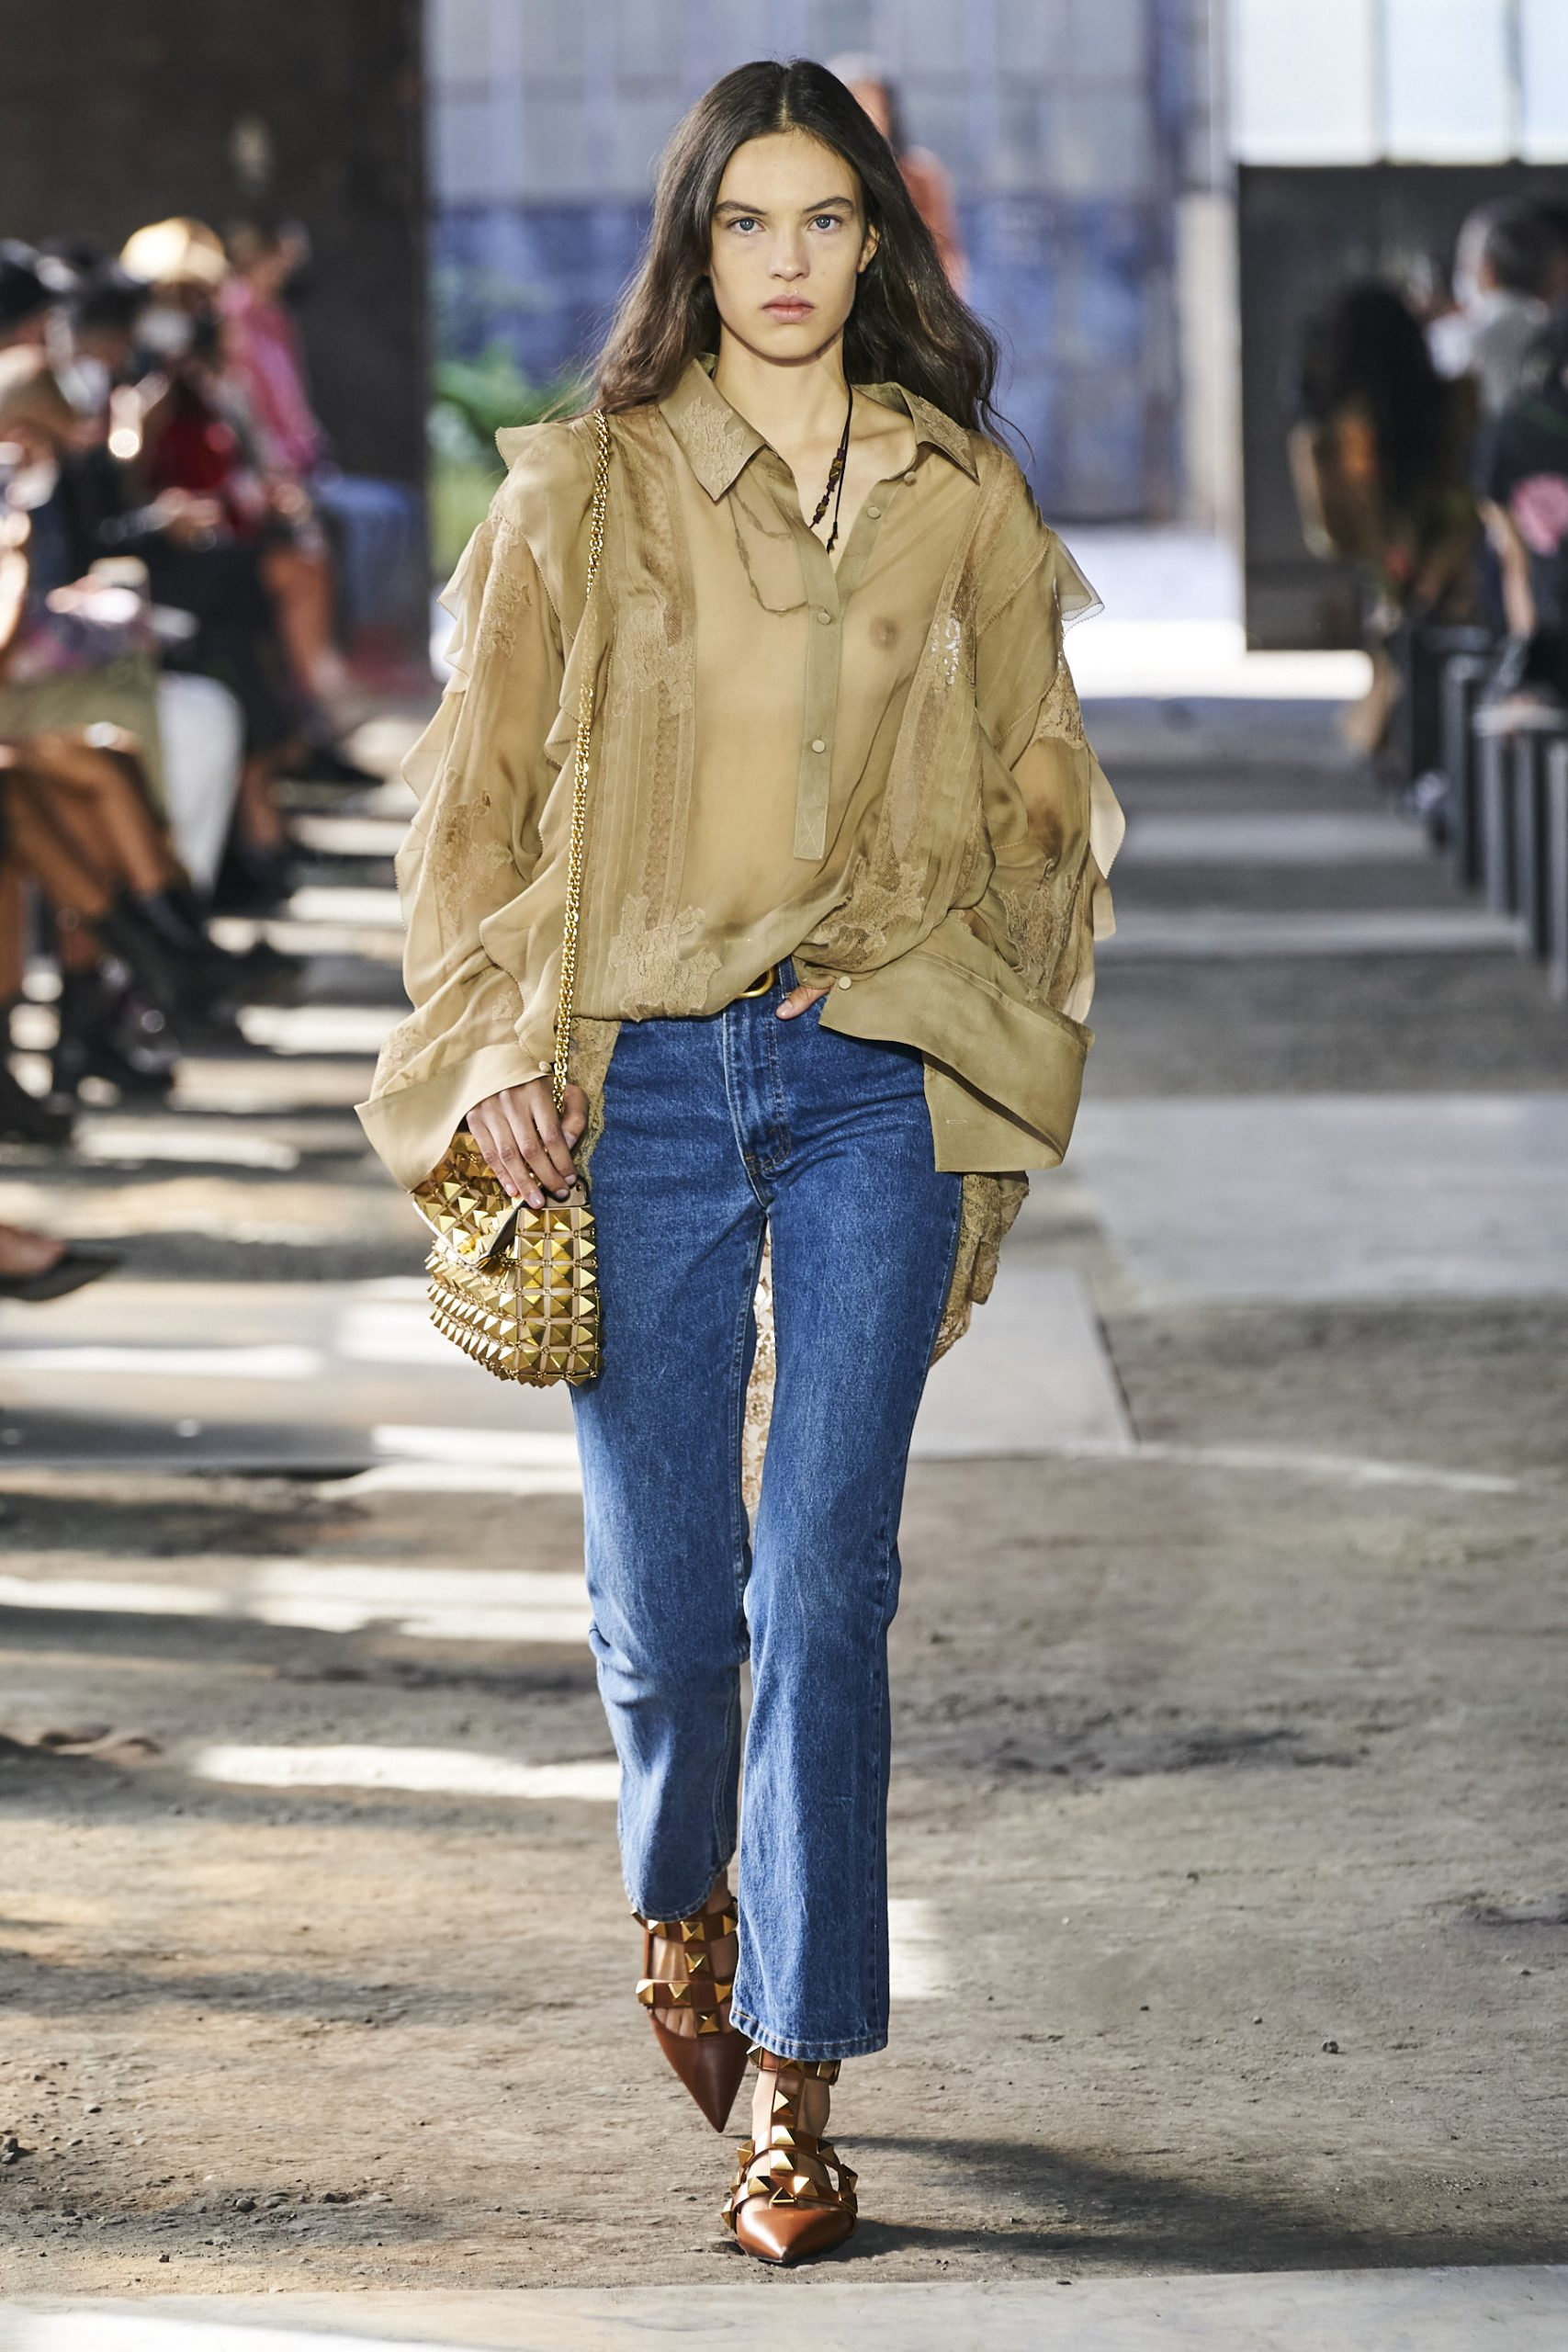 Top 15 Breakout Fashion Show Models of Spring 2021